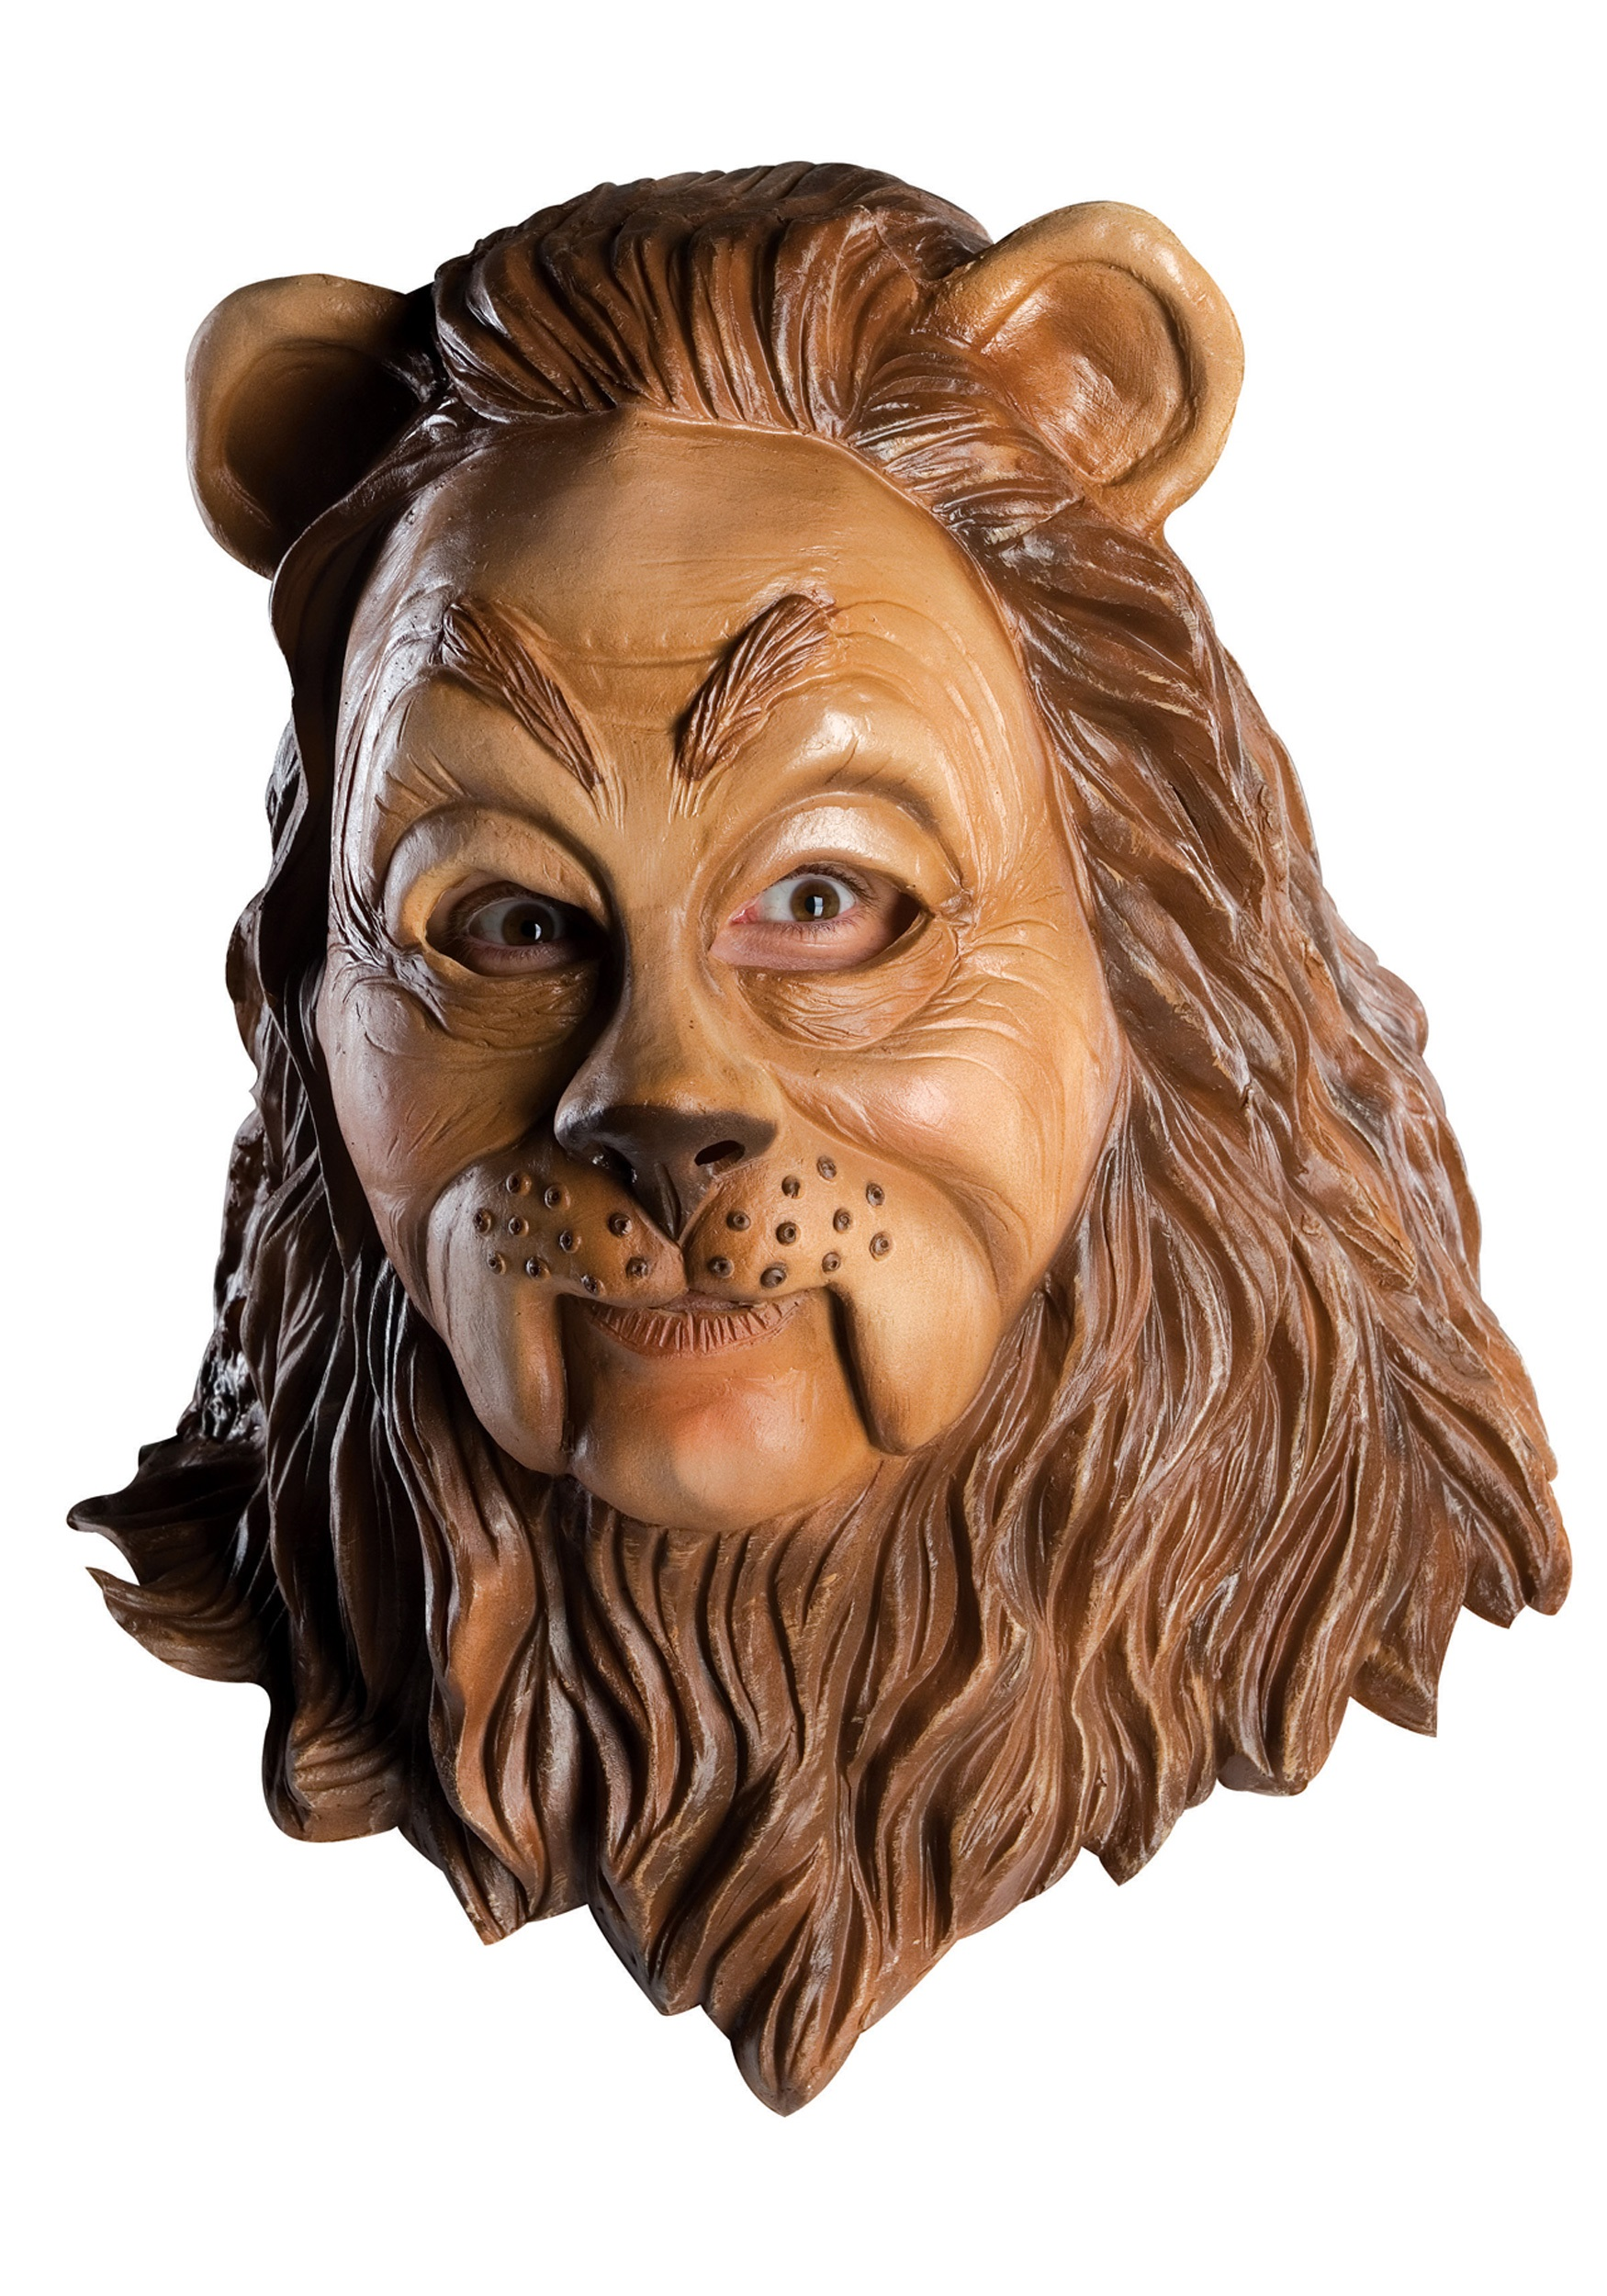 Cowardly Lion Costume Mask  sc 1 st  Wizard of Oz Costumes & Cowardly Lion Costume Mask - Authentic Wizard of Oz Masks